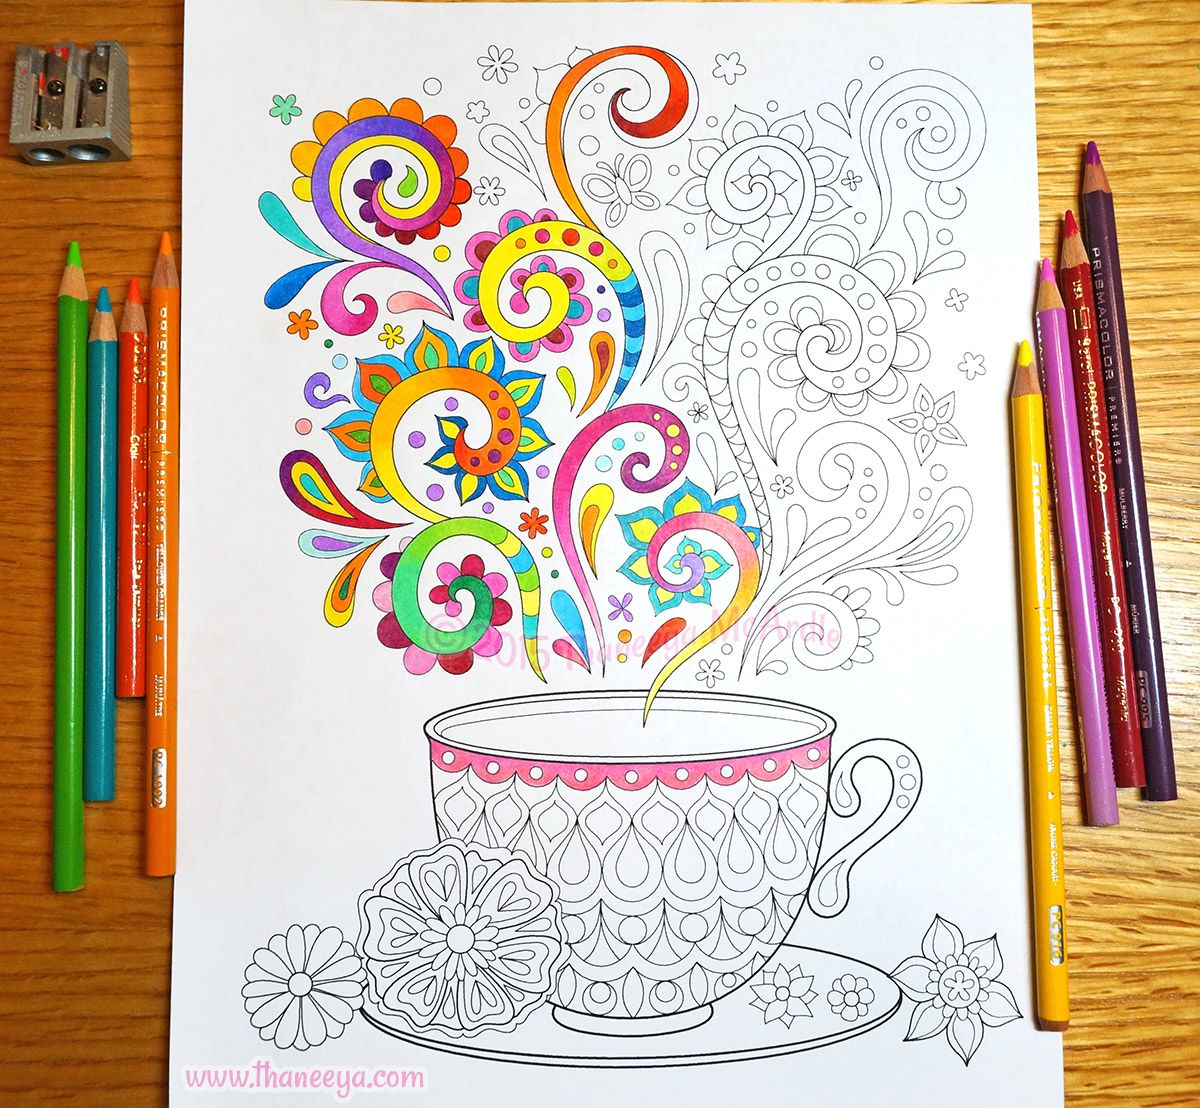 Tea Cup Coloring Page From Thaneeya Mcardle